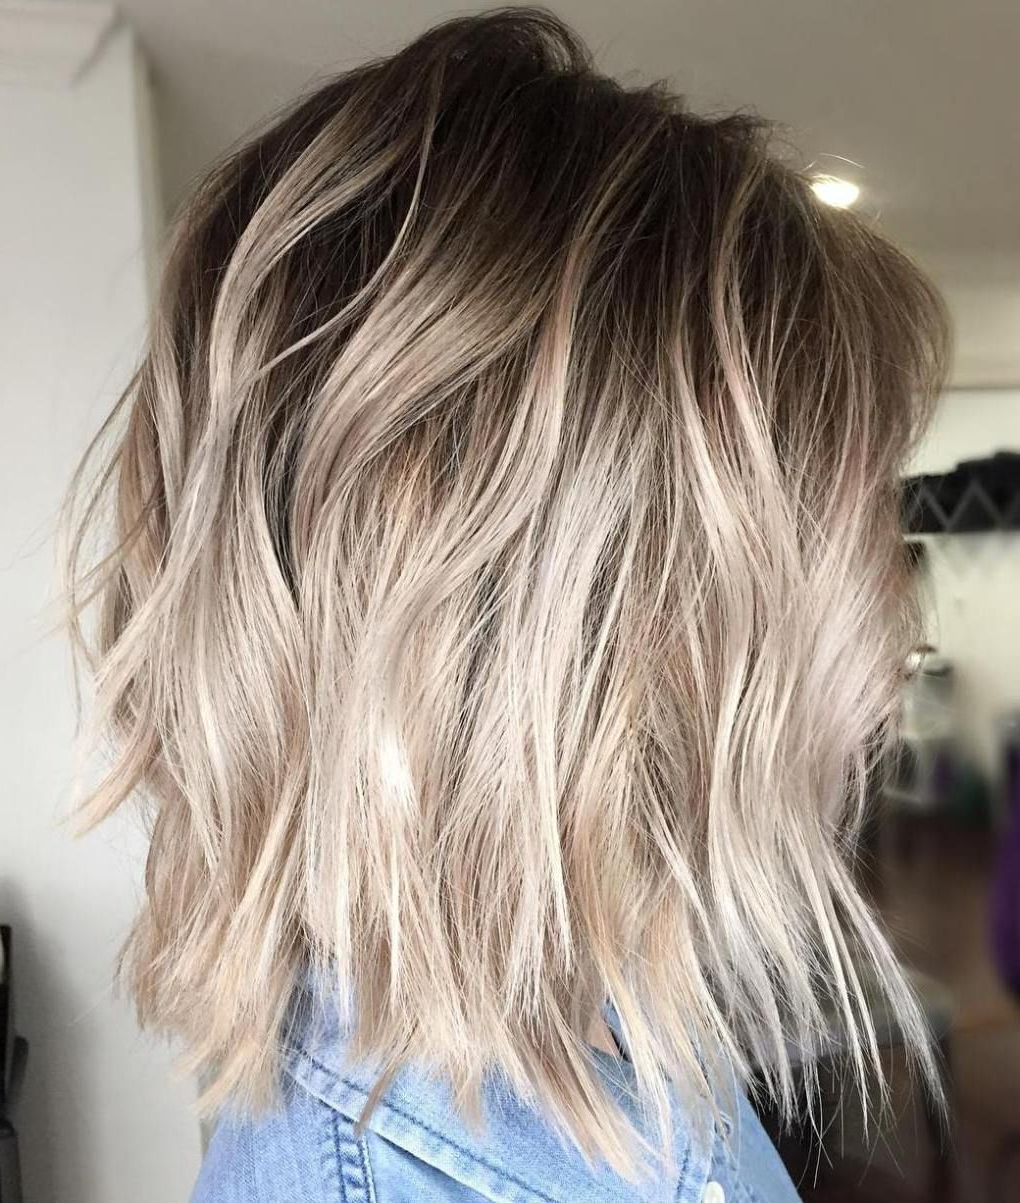 Blonde Balayage Bob – Gallery Hairstyle Ideas With Layered Balayage Bob Hairstyles (View 15 of 20)